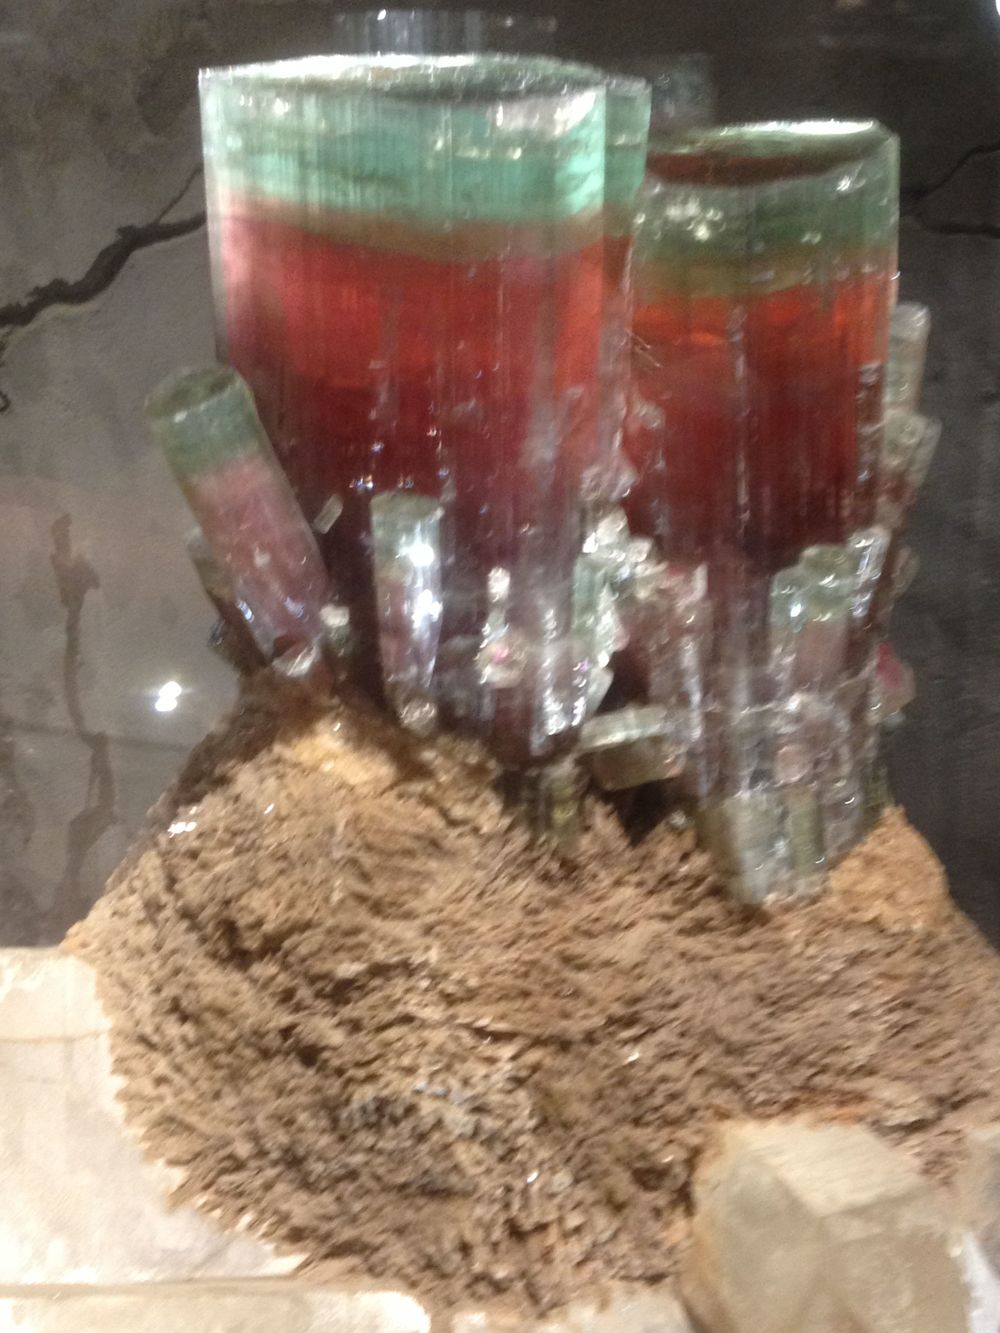 Tourmaline Specimen at the Smithsonian